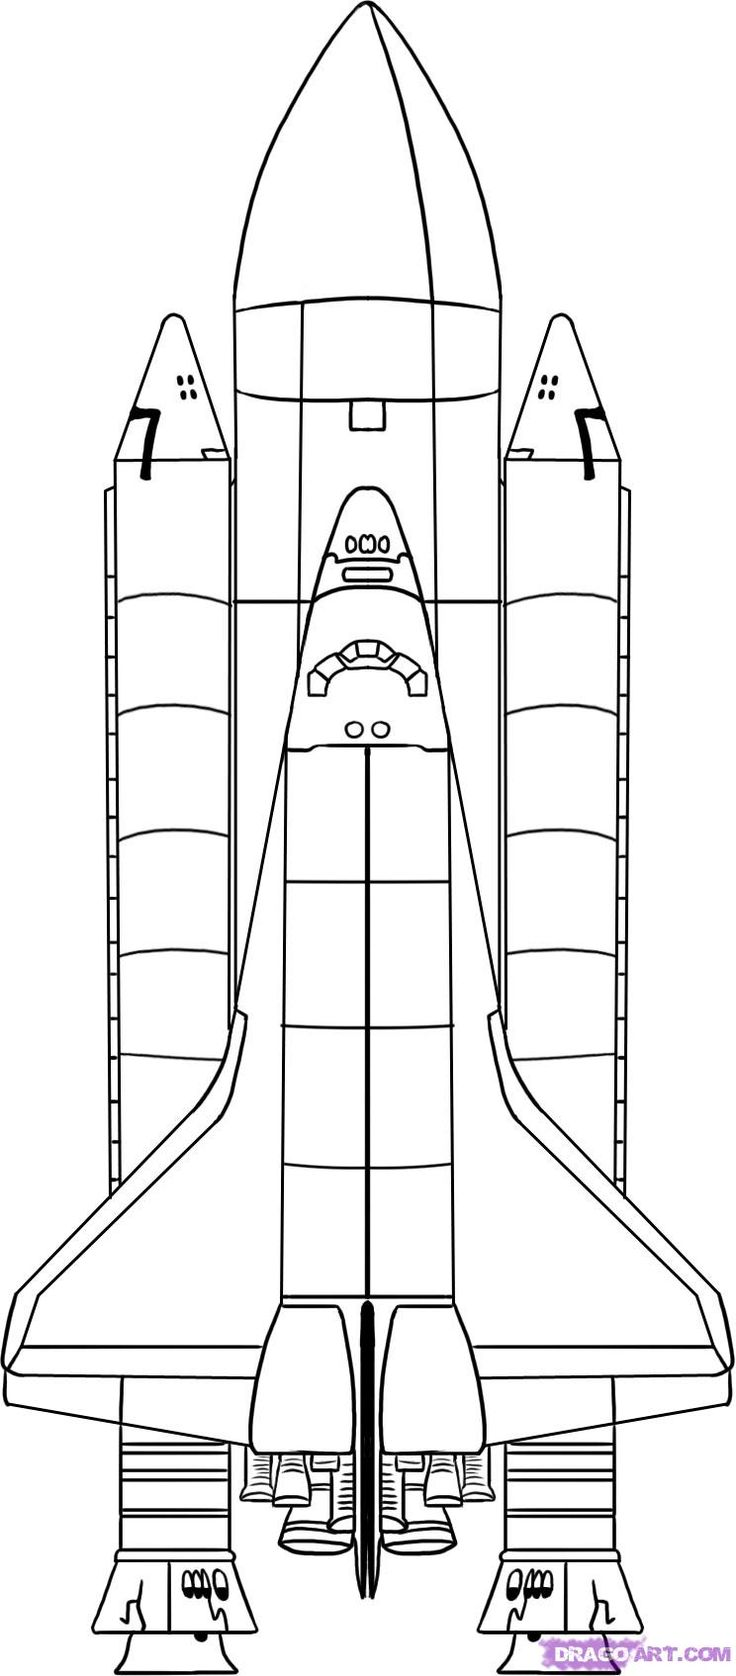 space shuttle - links to a great space shuttle art project page